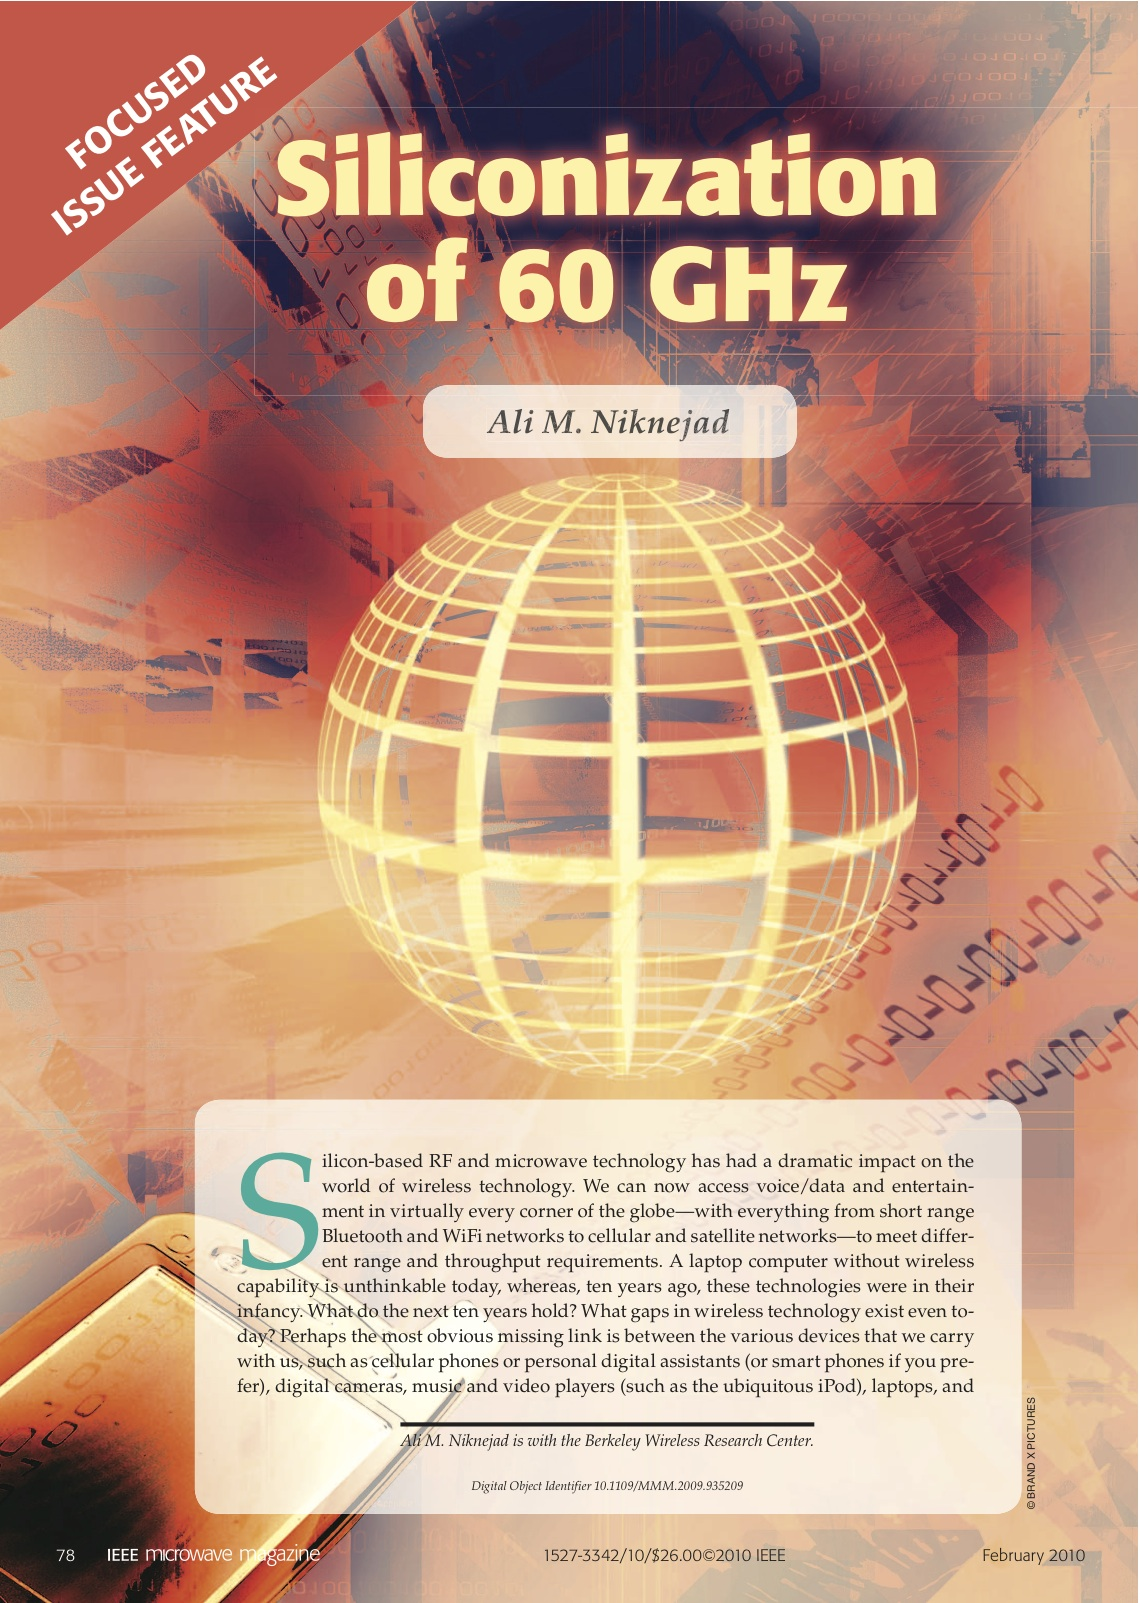 A Niknejad Inductors And Transformers Enabling The Gigahertz Silicon Ic Revolution Ieee Solid State Circuits Magazine Vol 6 No 1 Pp